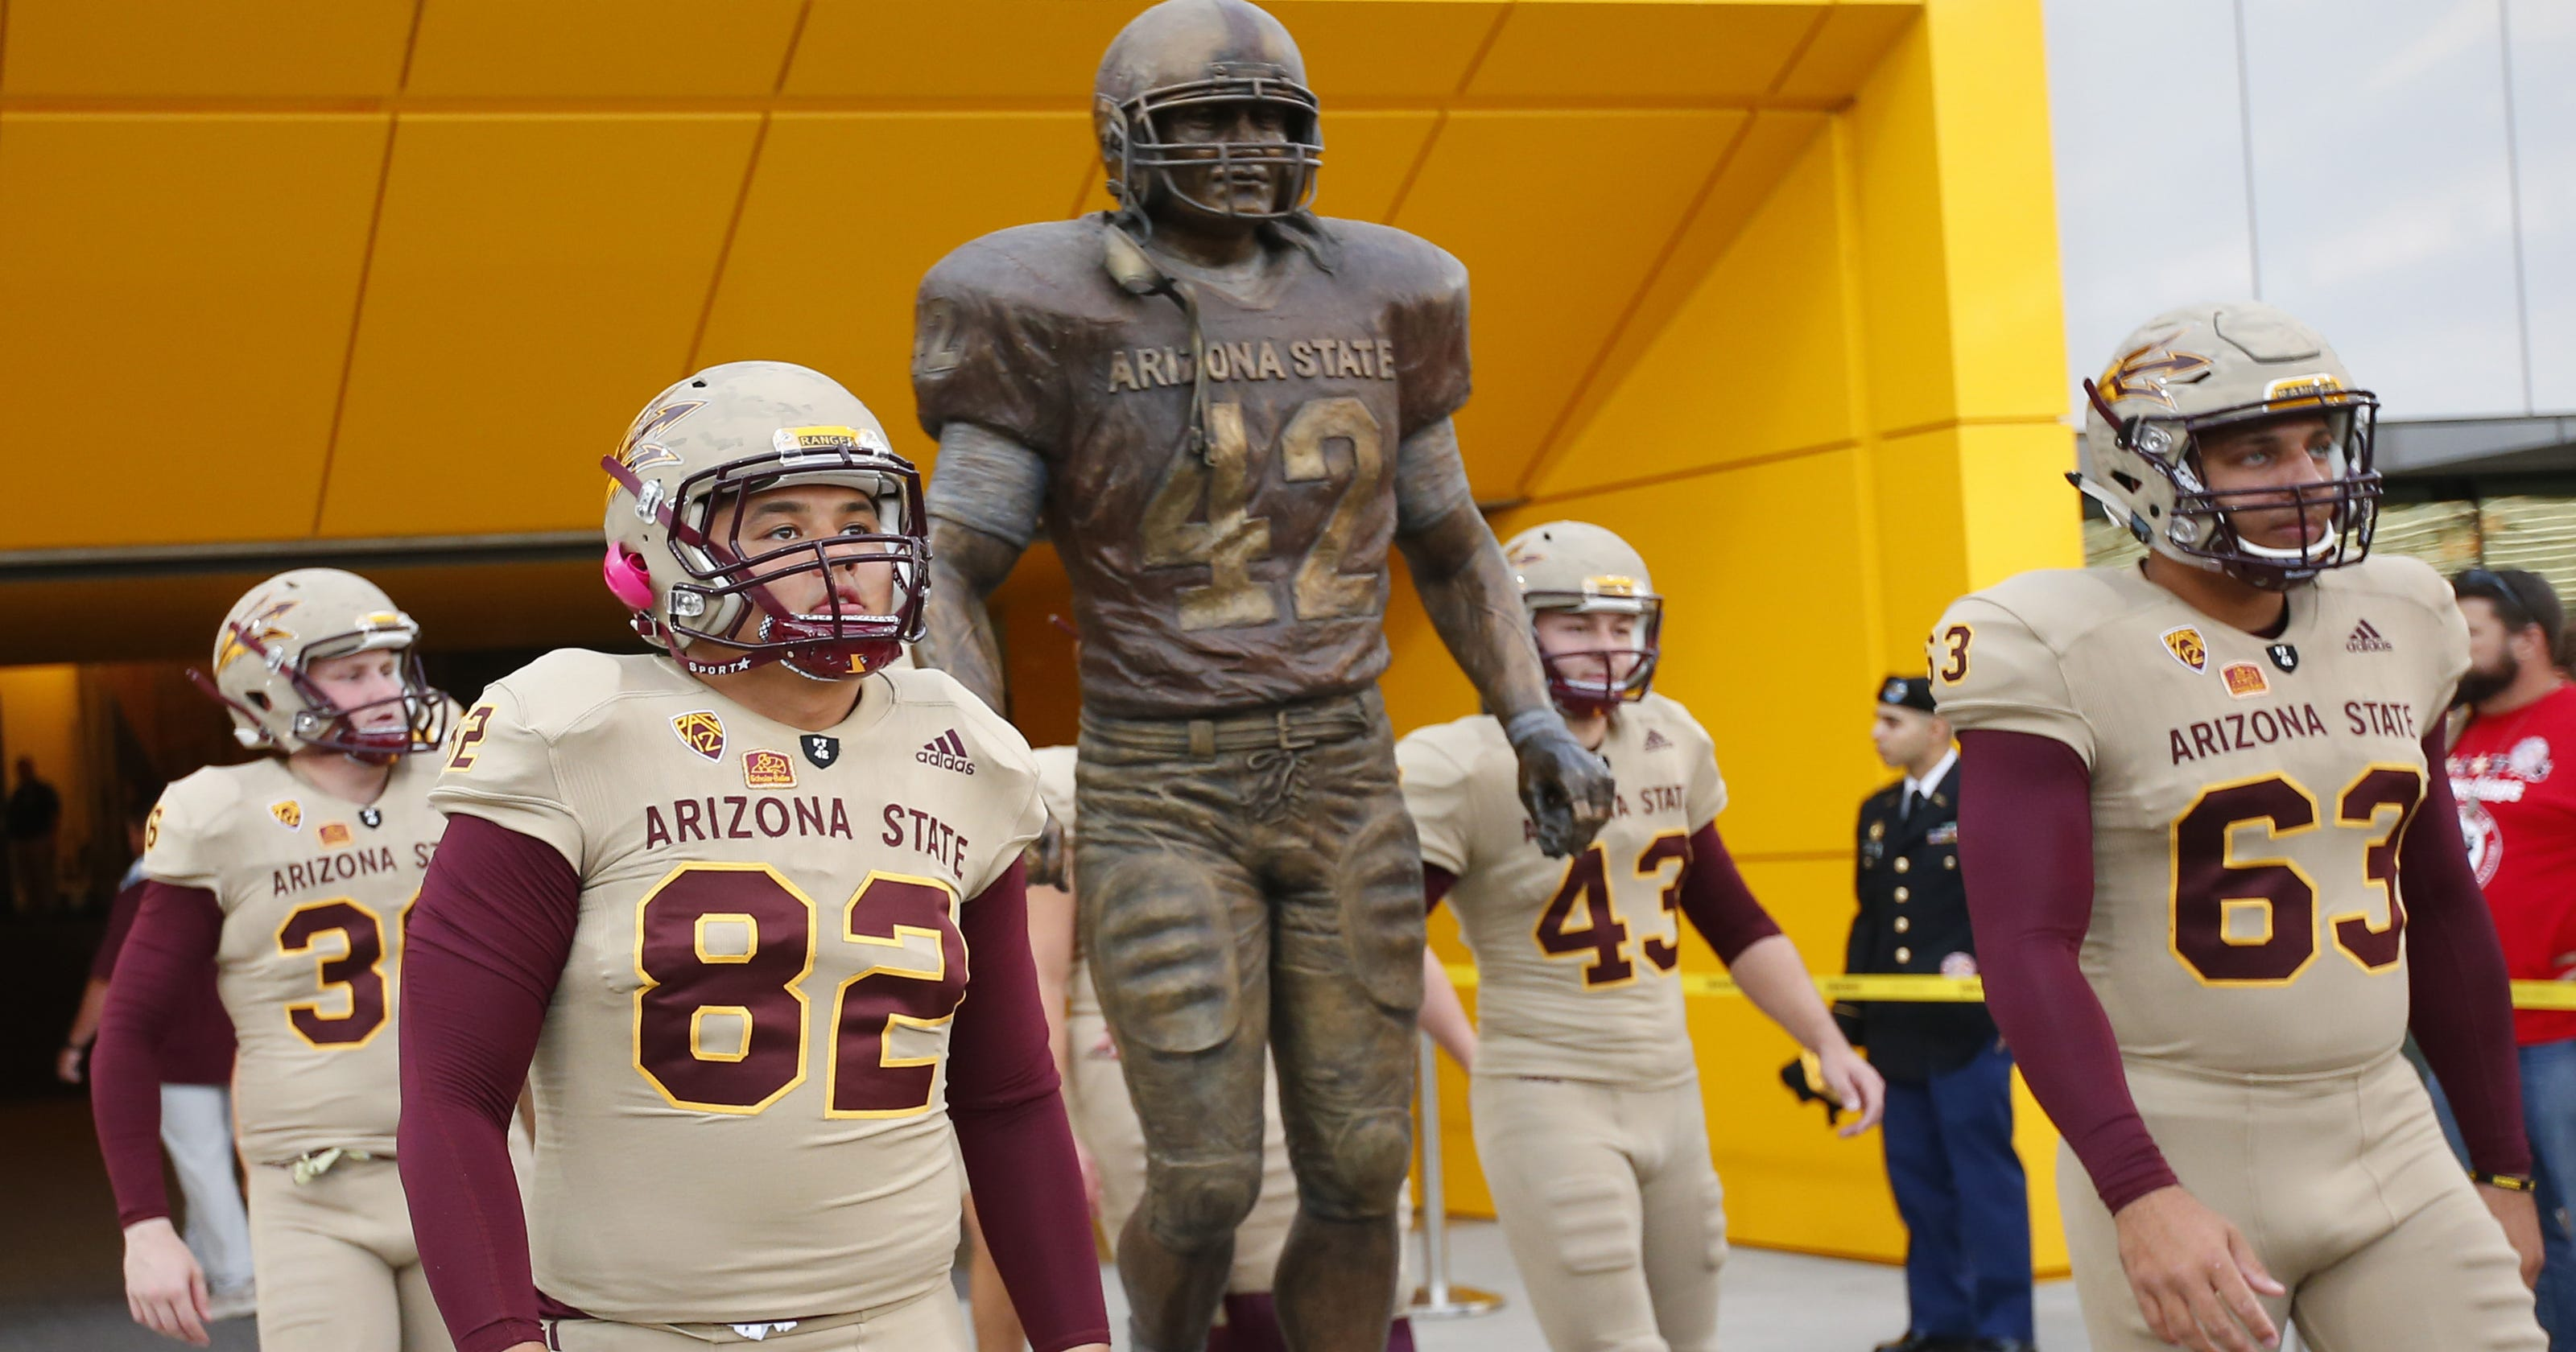 timeless design b4675 73419 ASU football honoring U.S. military, Pat Tillman with ...